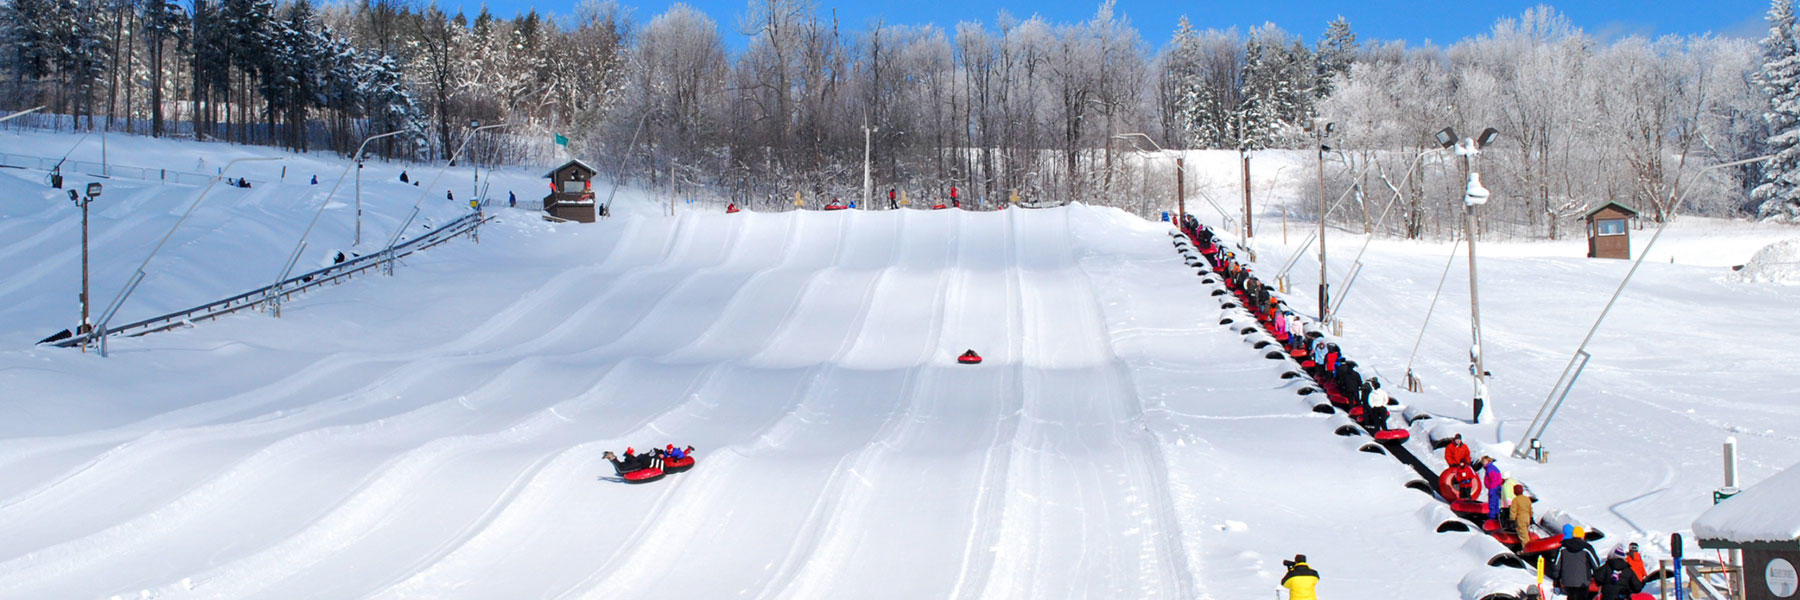 Seven Springs Snow Tubing Park